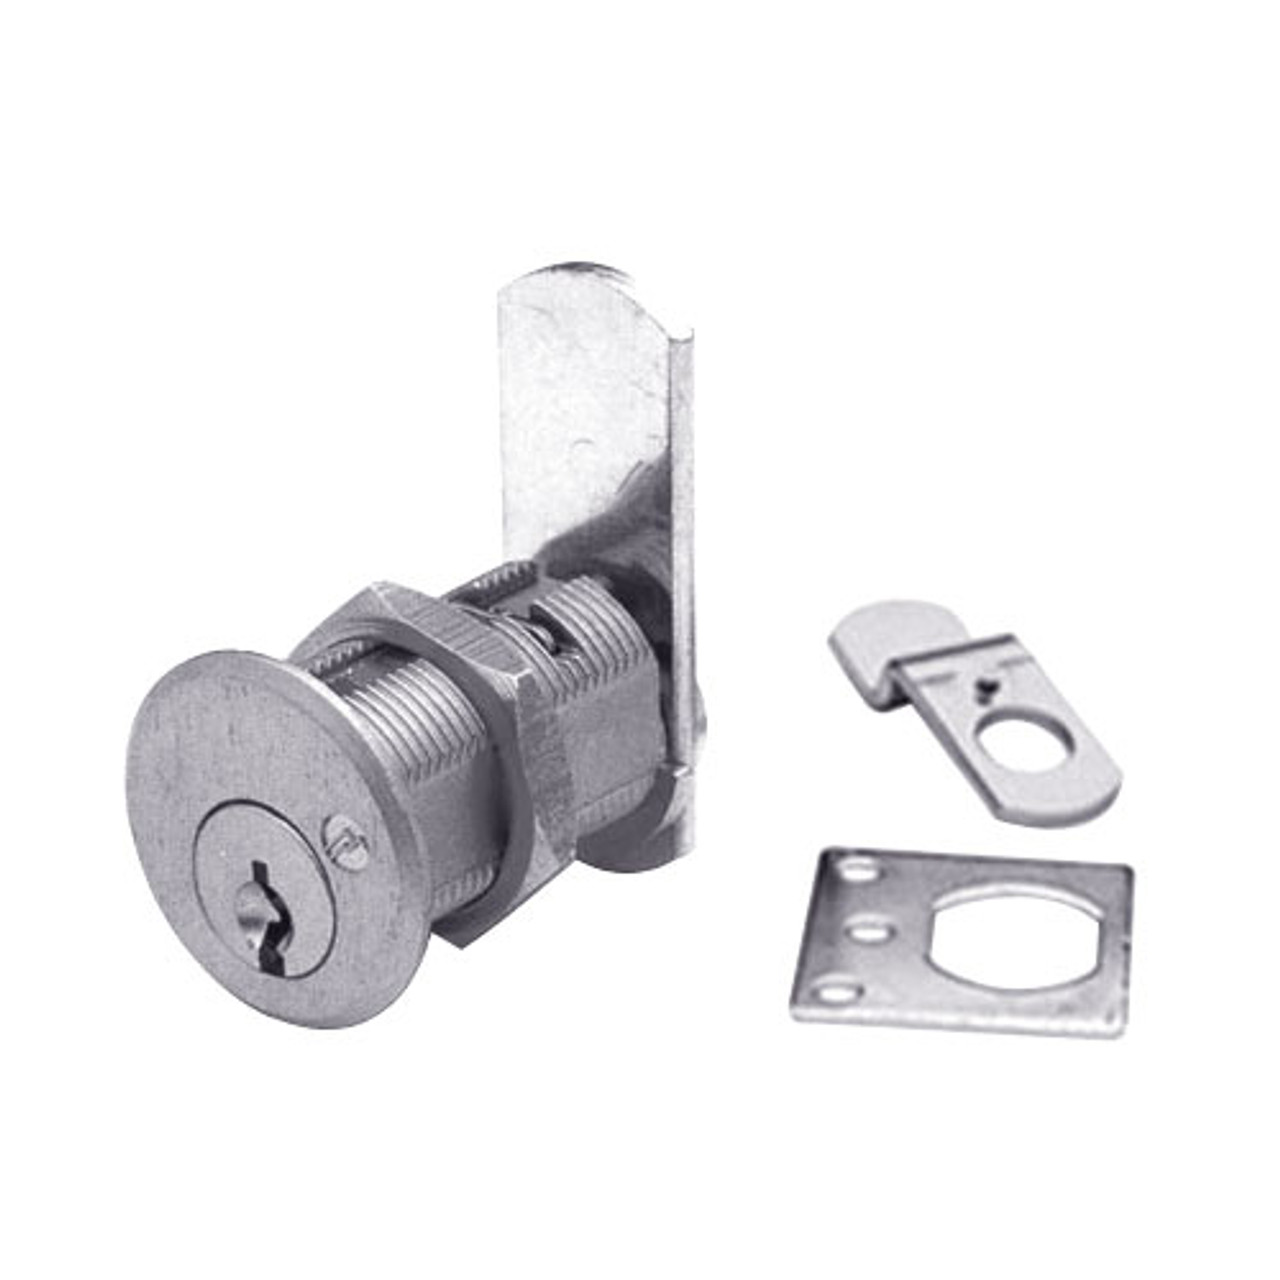 Olympus DCN2-KA103-26D Cam Locks in Satin Chrome Finish